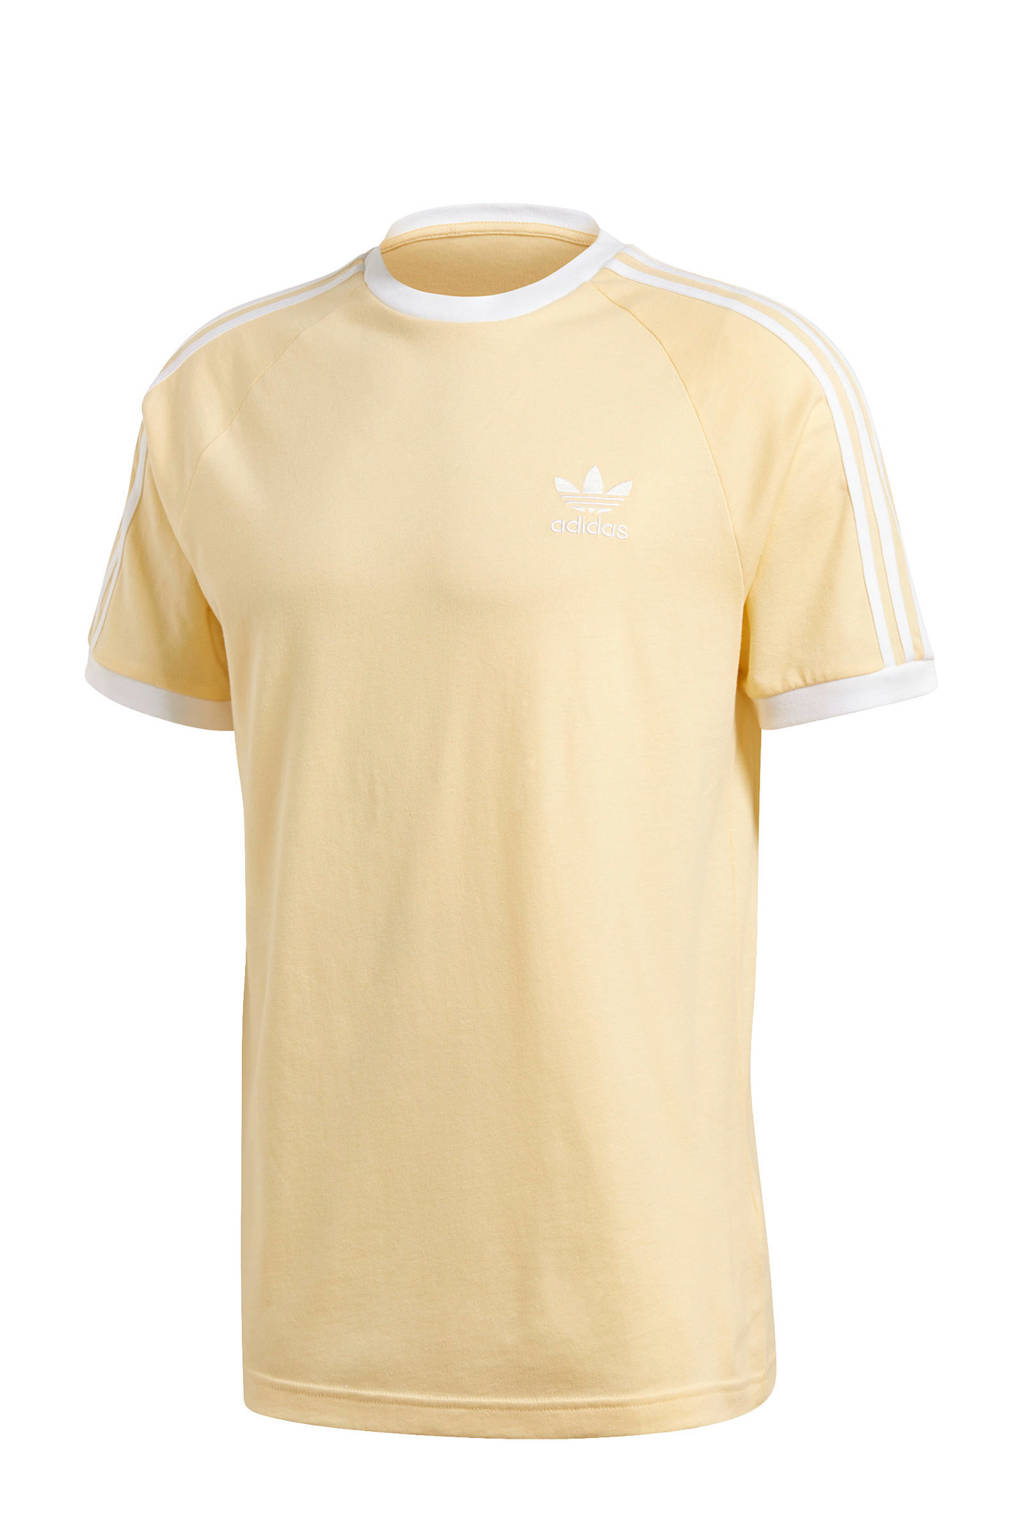 adidas Originals Adicolor T-shirt geel/wit, Geel